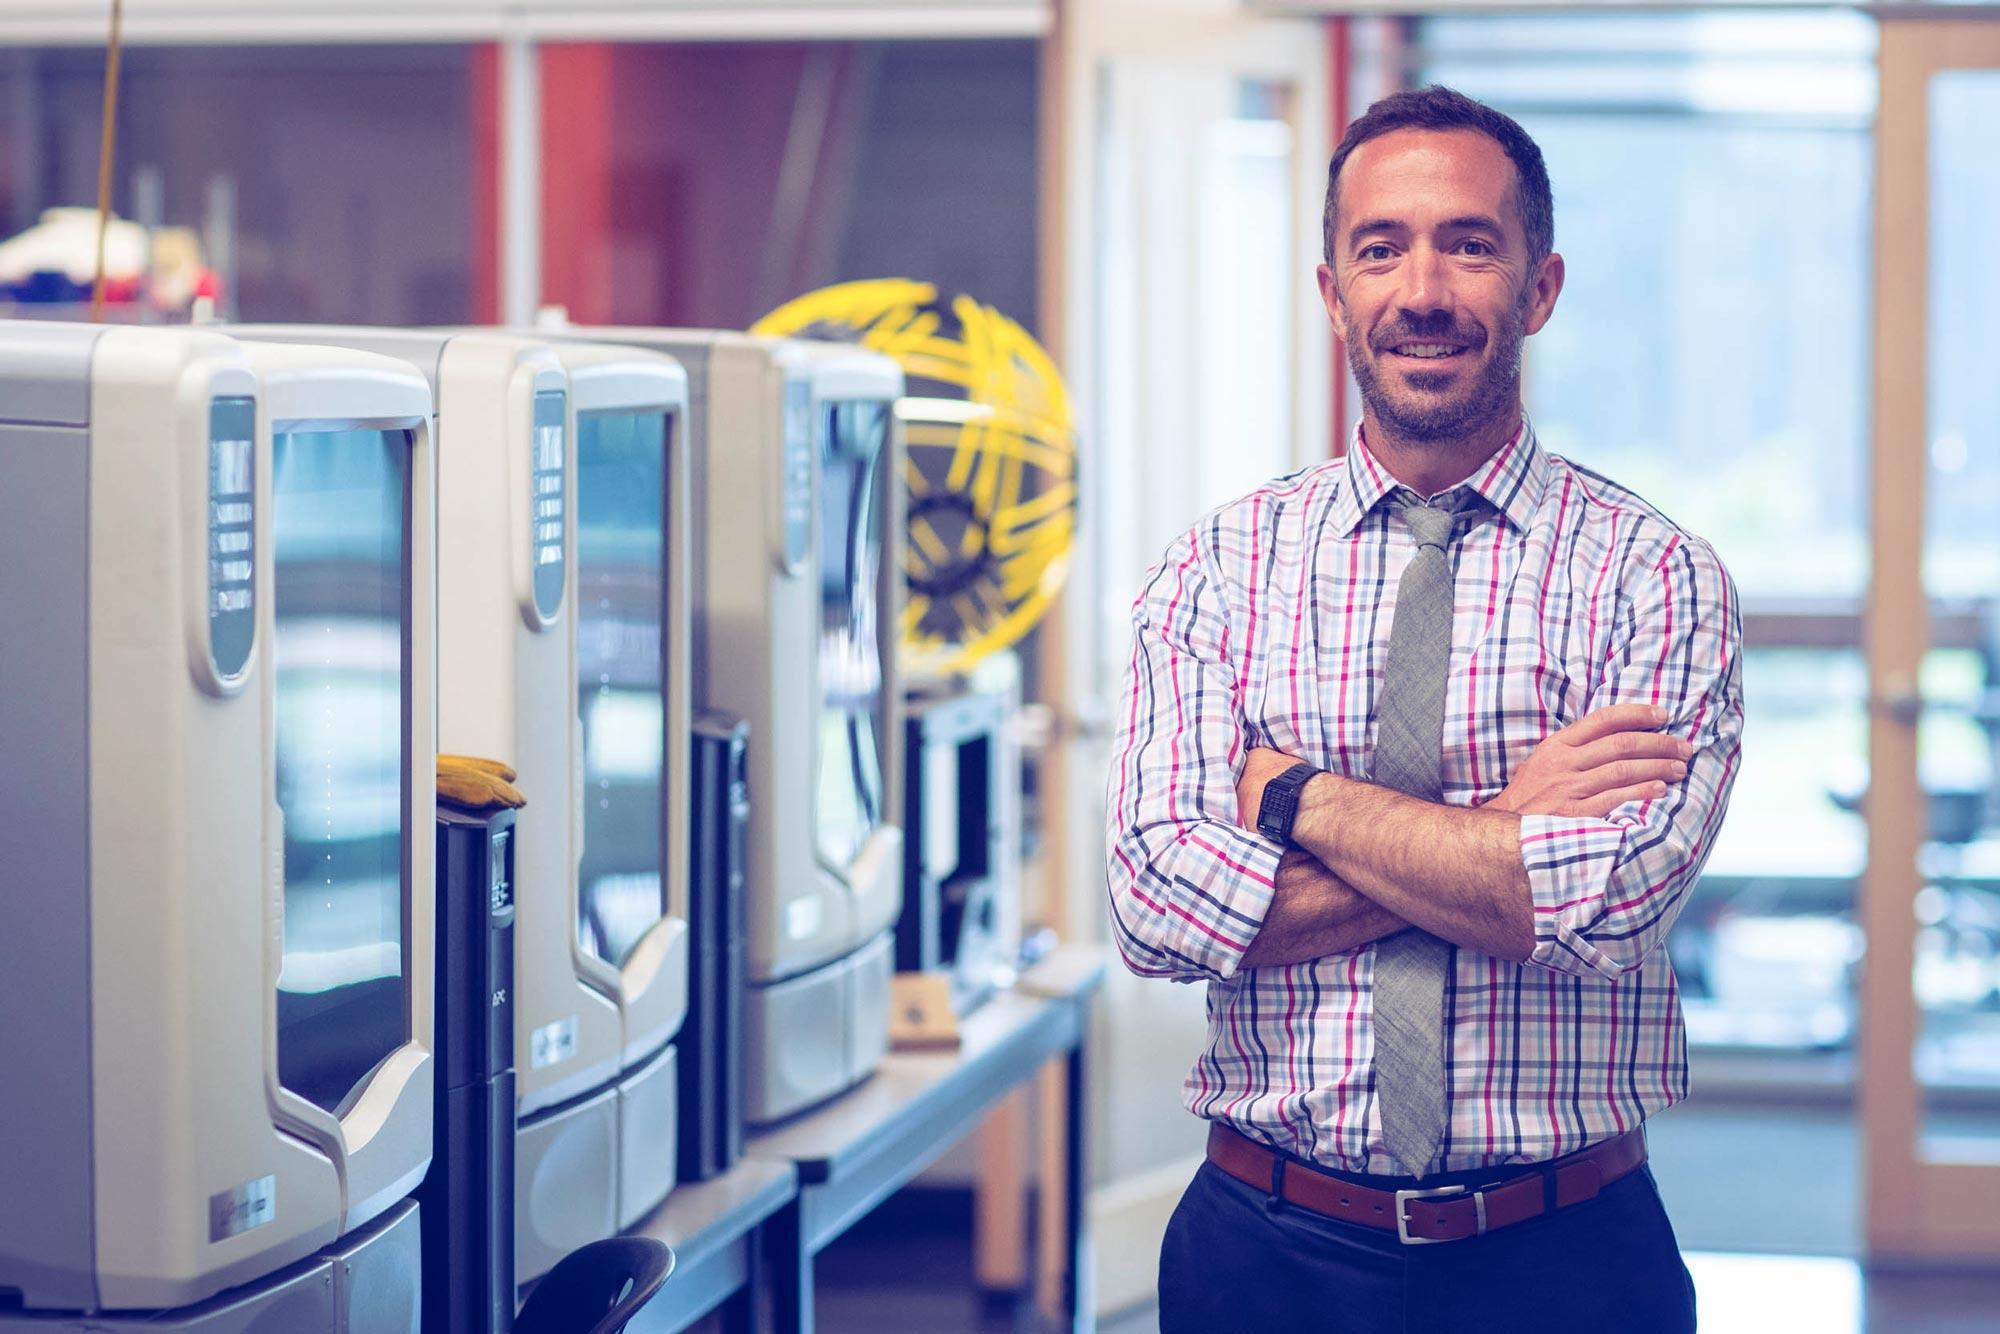 Matt Shields, trained as an engineer, found his true calling in education. Now he's shaking up how Charlottesville schools teach STEM.